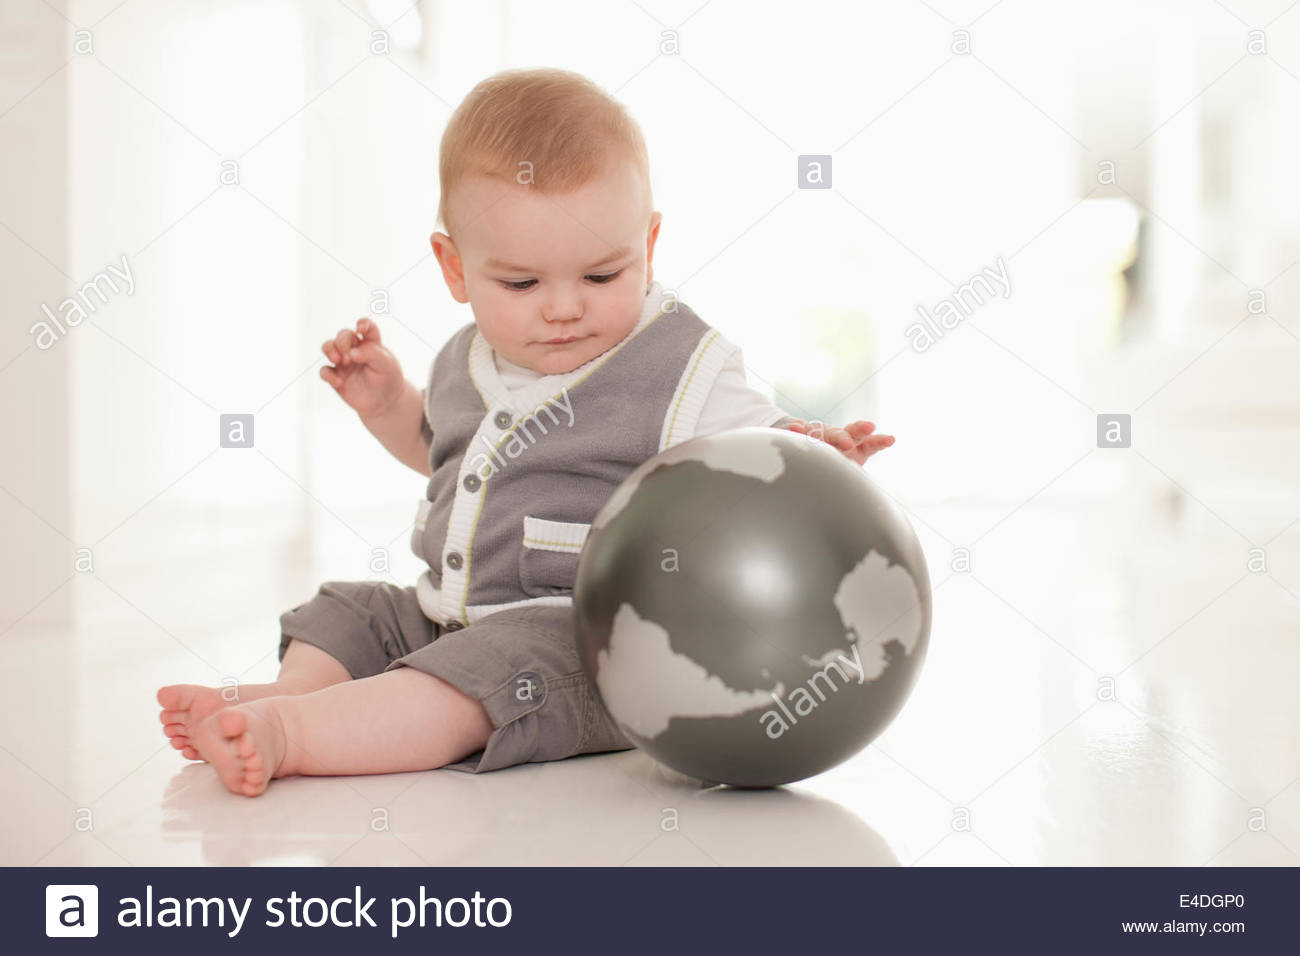 Smiling baby playing with globe on floor - Stock Image